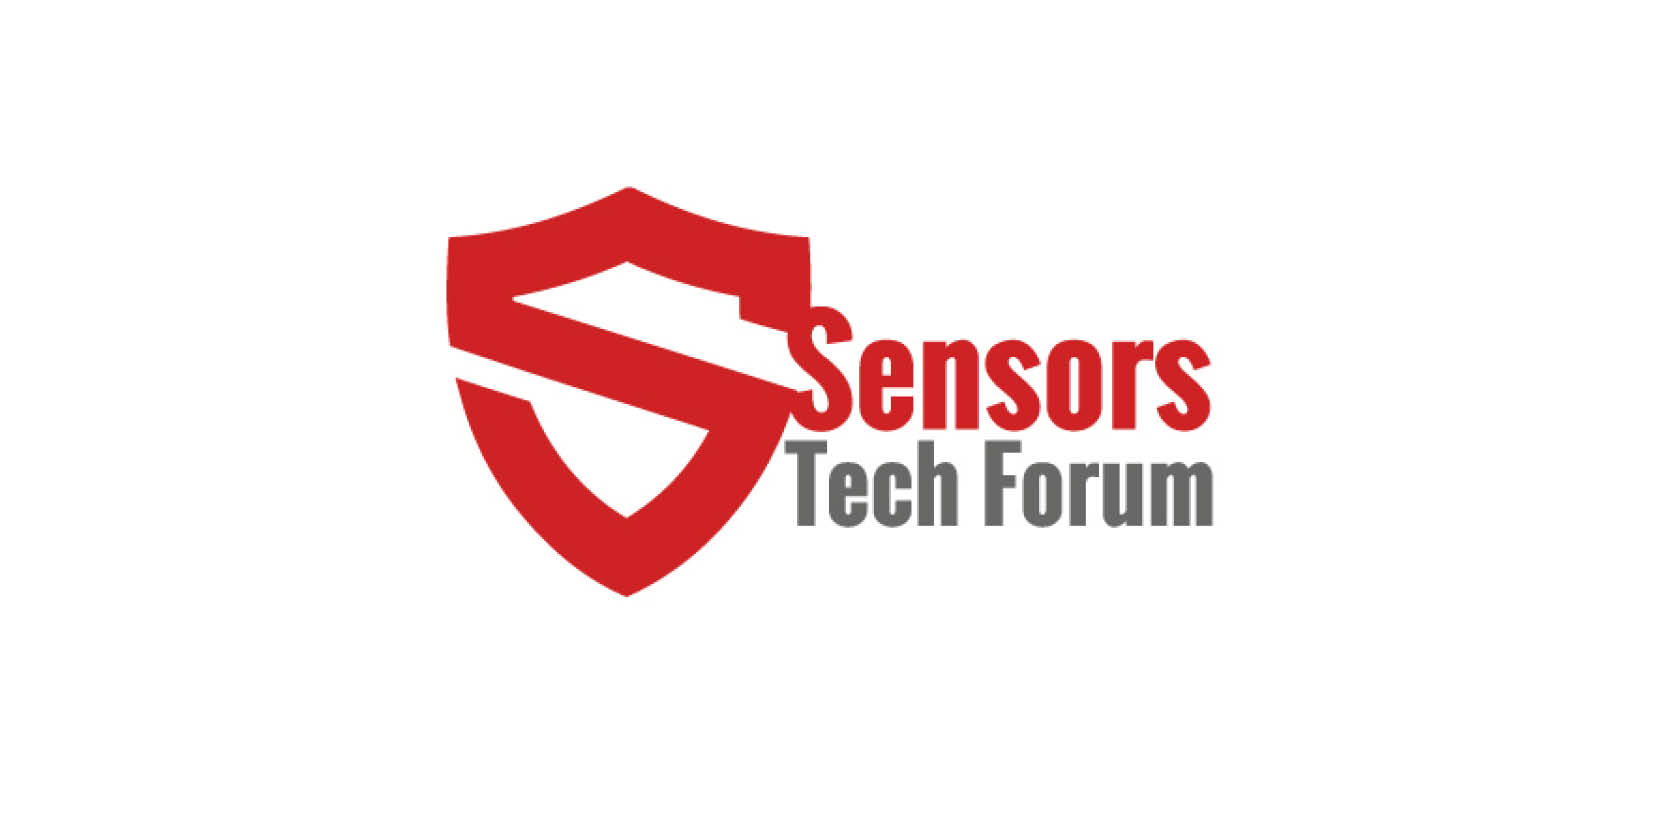 Sensors Tech Forum: Which Is the Most Popular Exploit Kit in 2016?